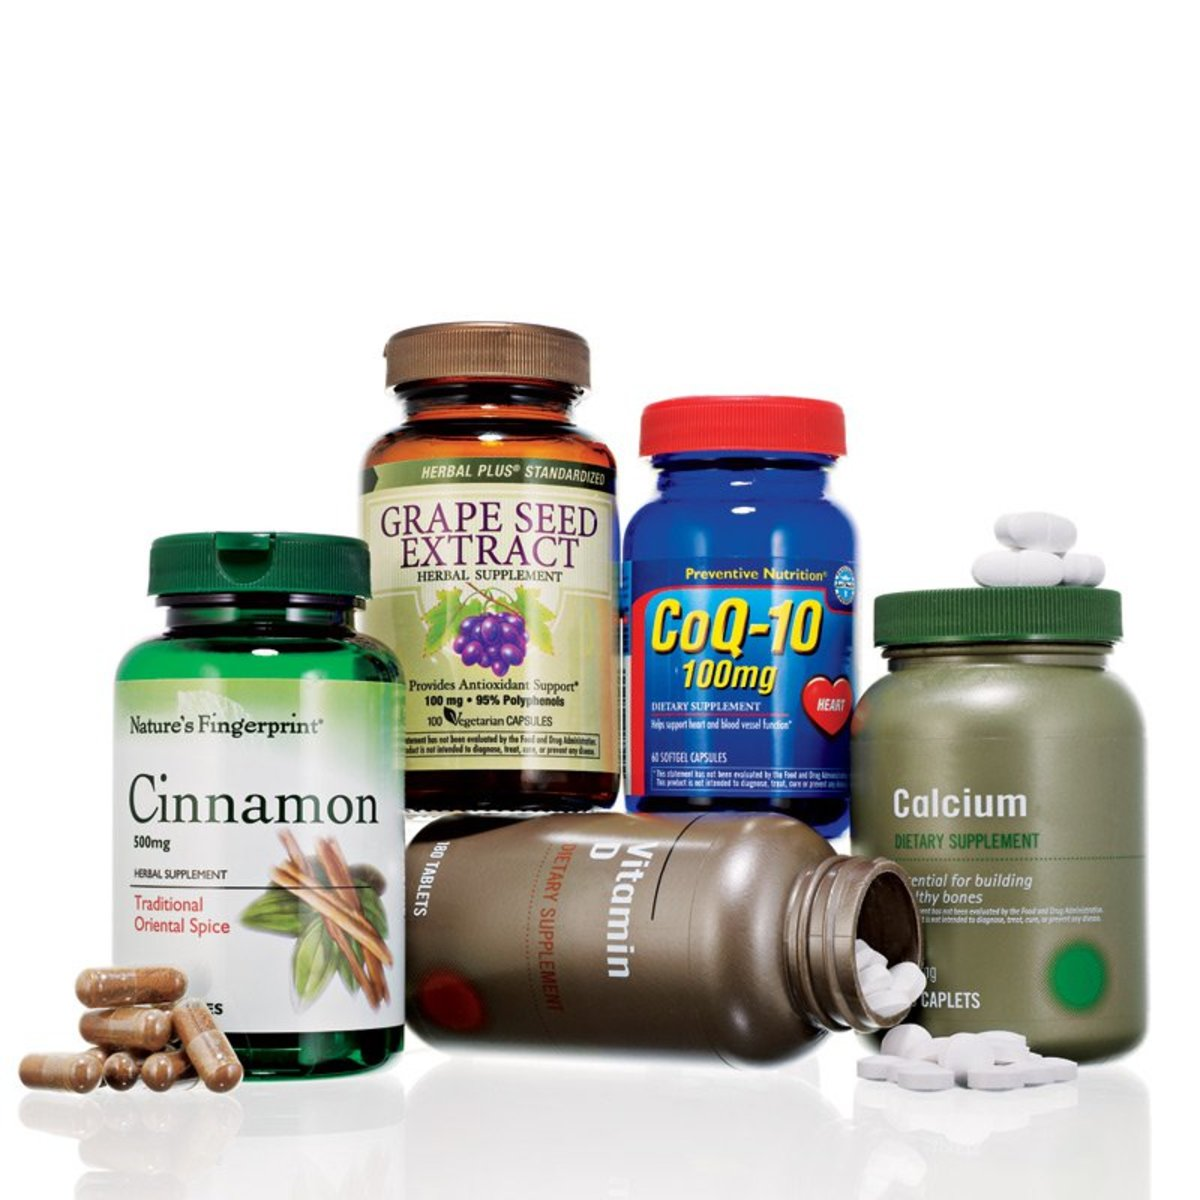 7 Supplements for Health and Wellness